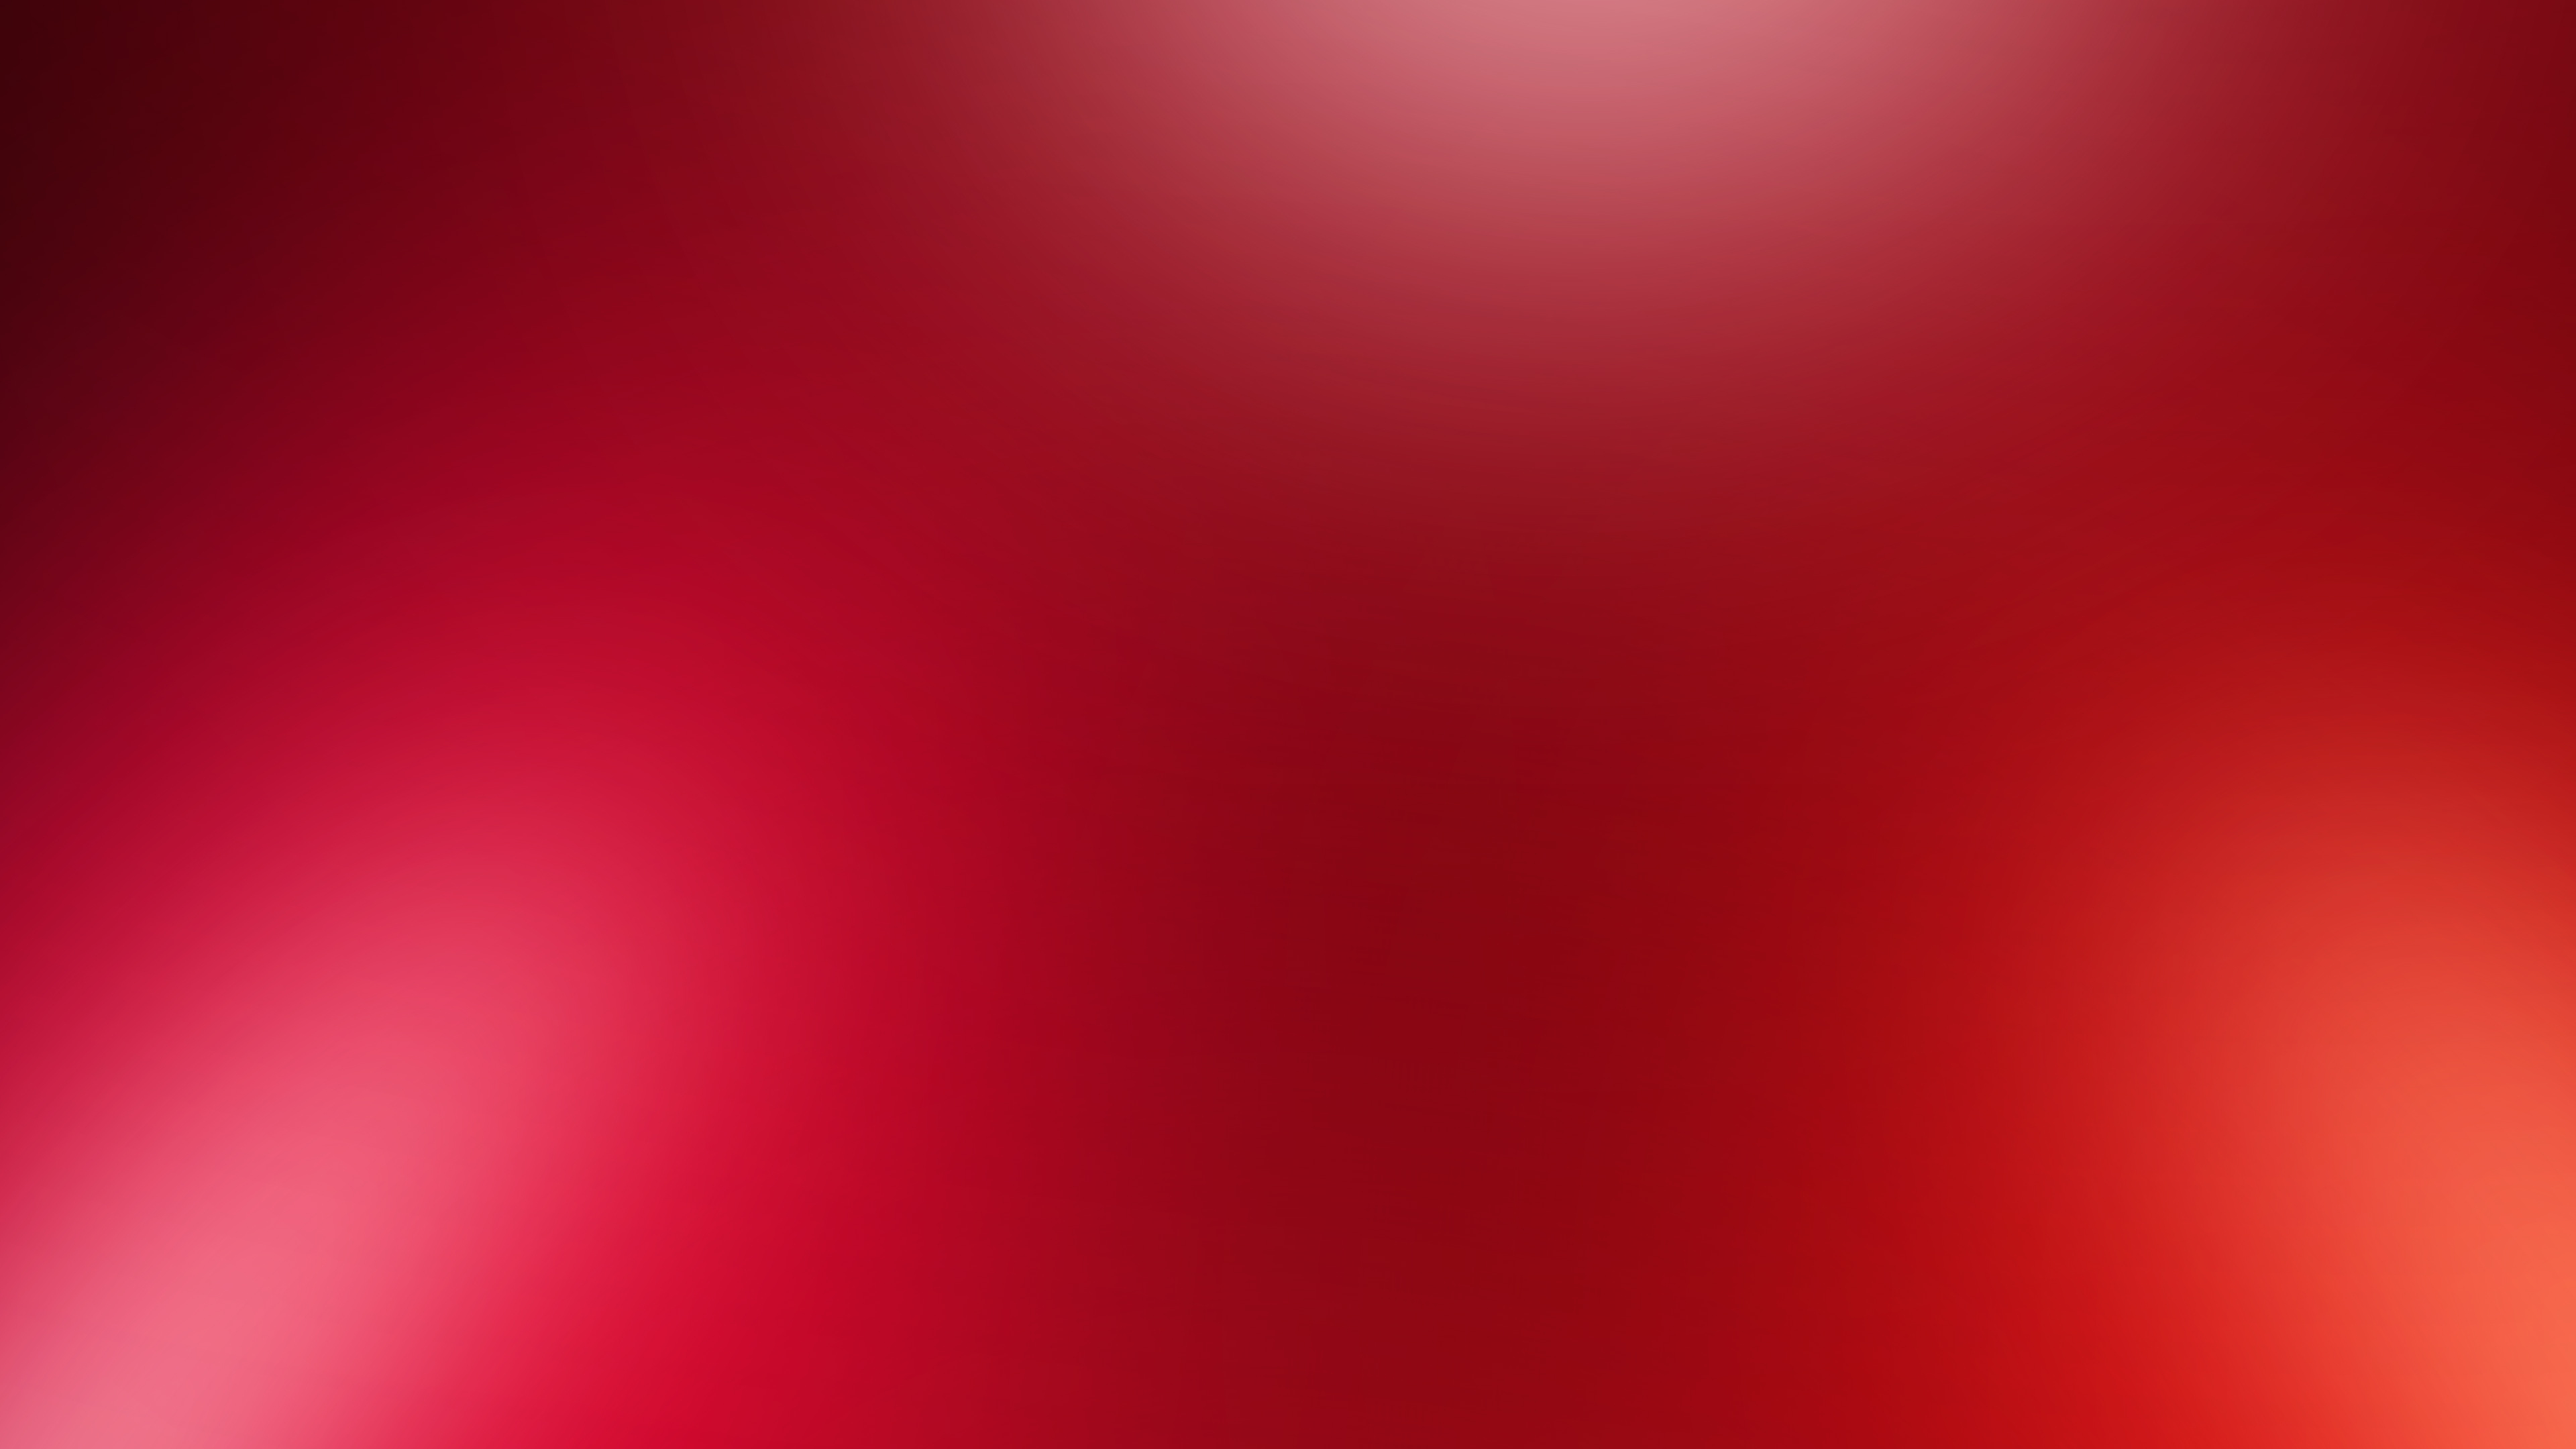 red-gradient-minimal-4k-yj.jpg